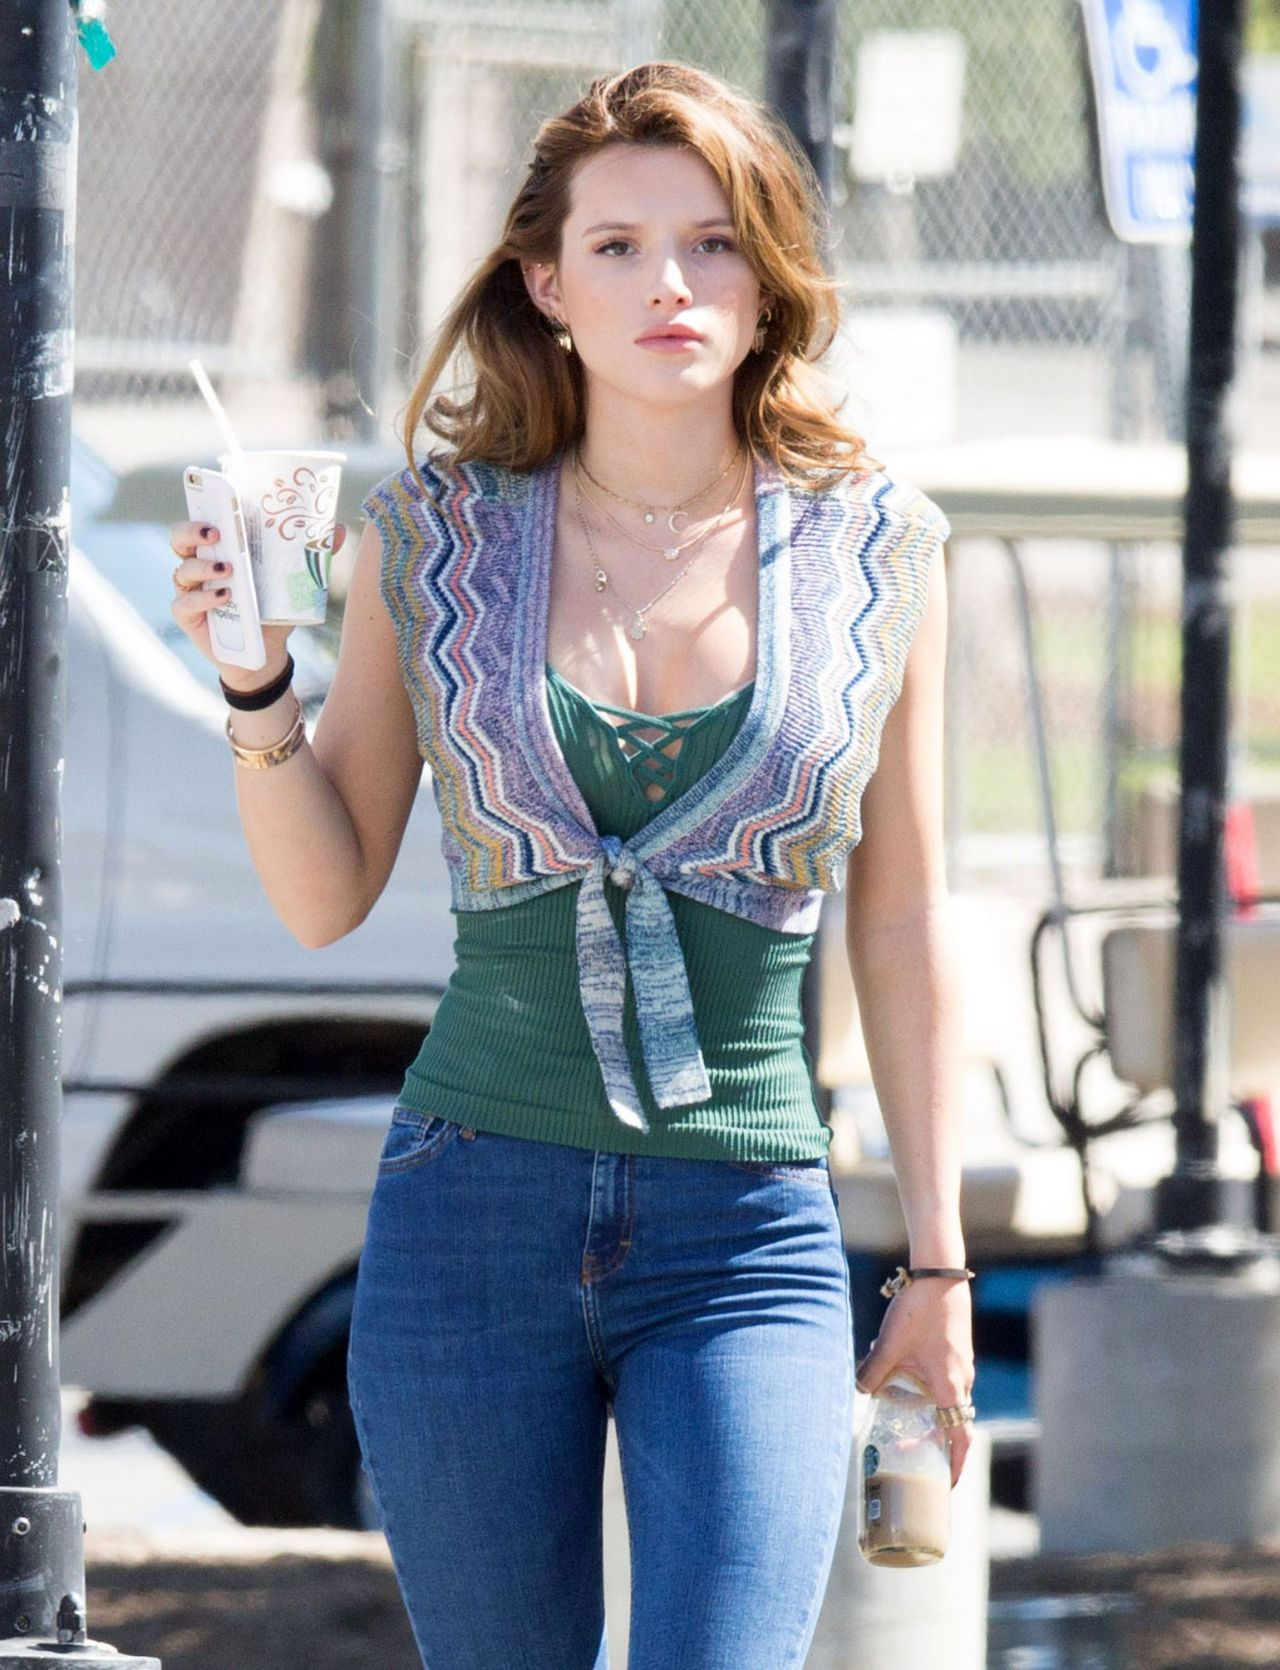 Bella Thorne In Tight Jeans - On The Set Of You Get Me -7547